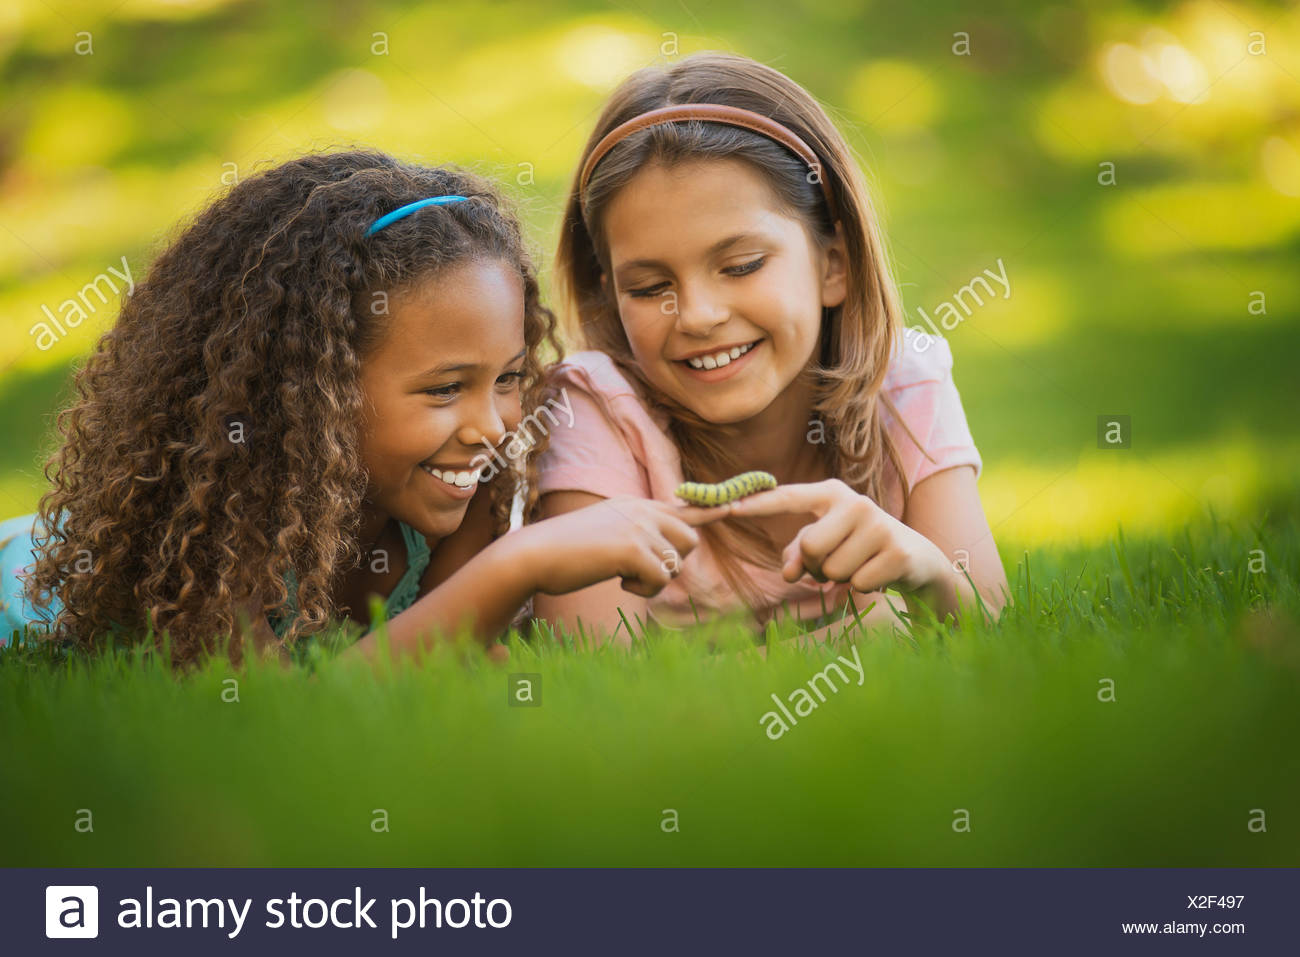 Two Girls Lying On The Grass One Holding A Green Caterpillar Her Finger